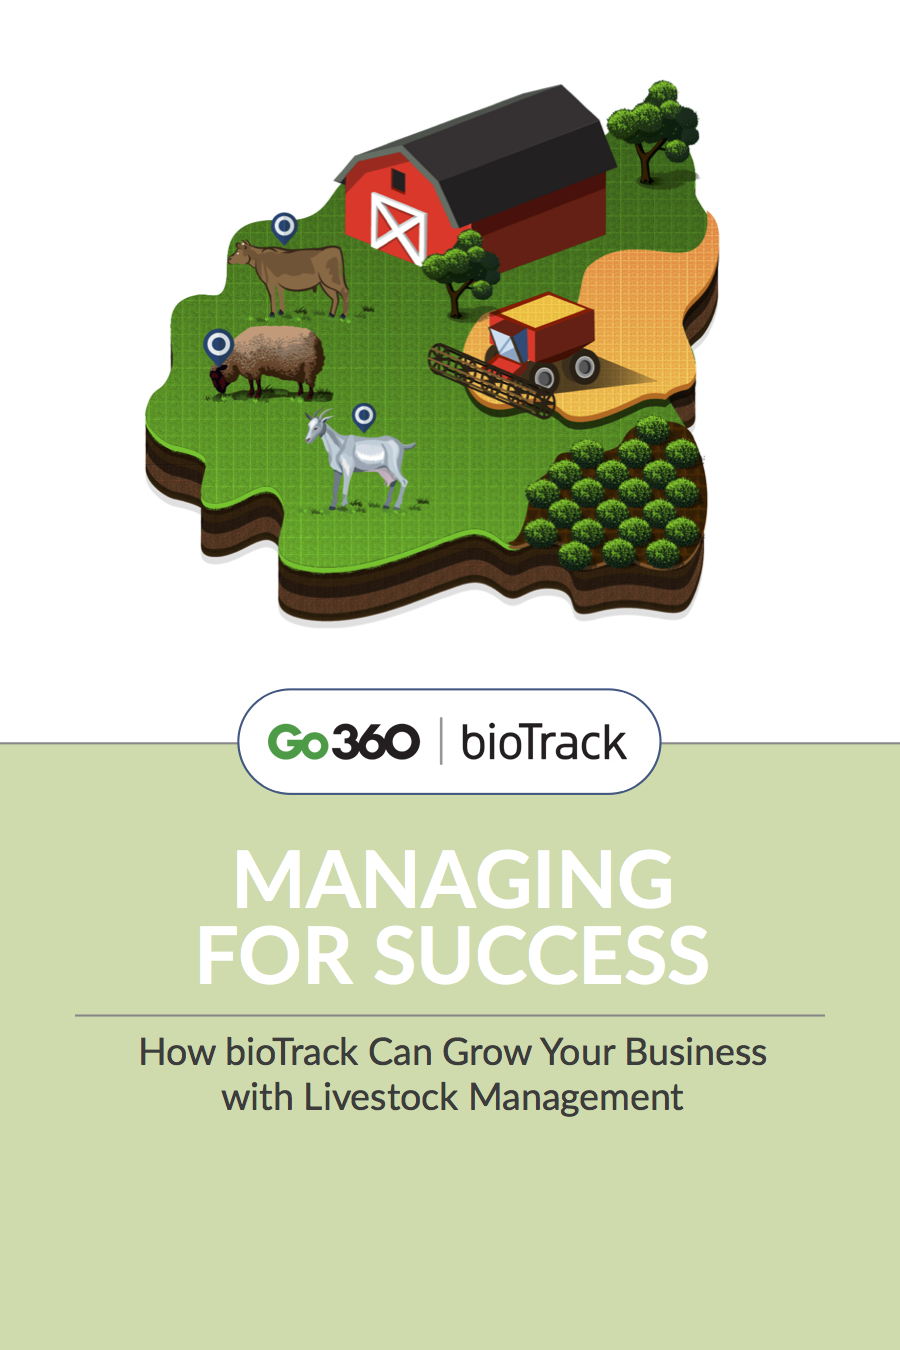 Go360 bioTrack Livestock Management